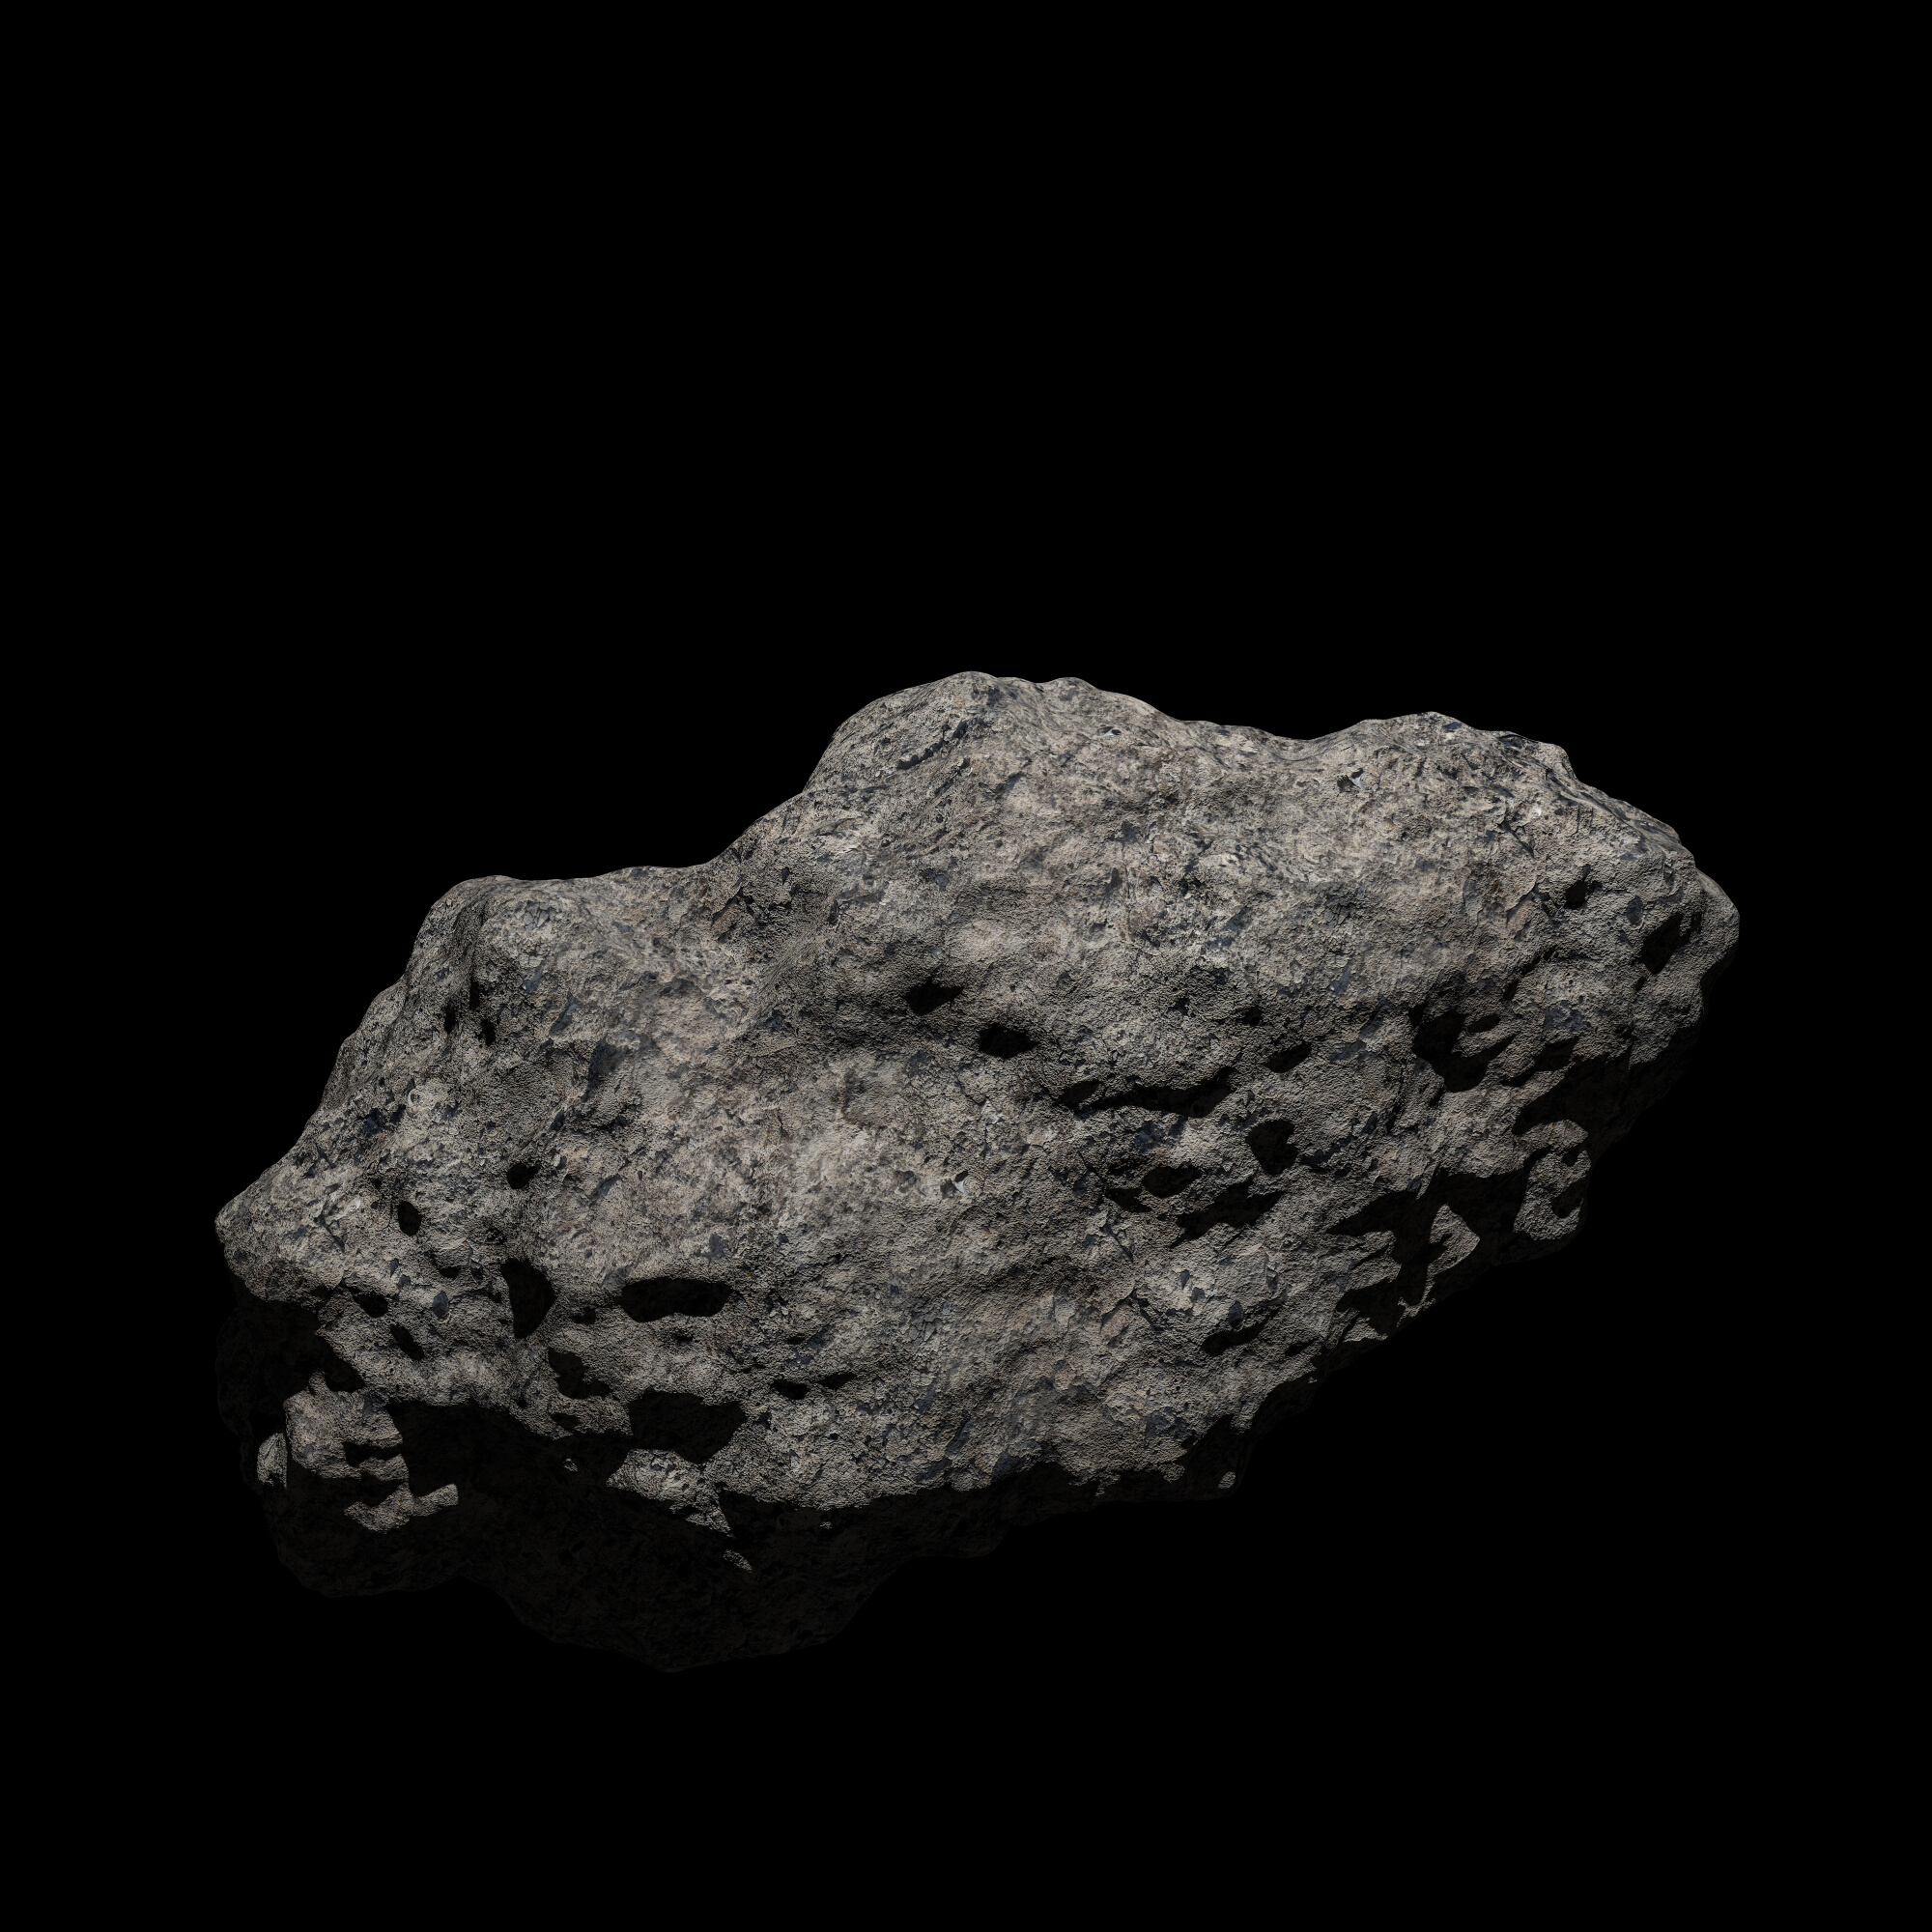 asteroid fantasi 2 3d model 3ds campuran karo 267190